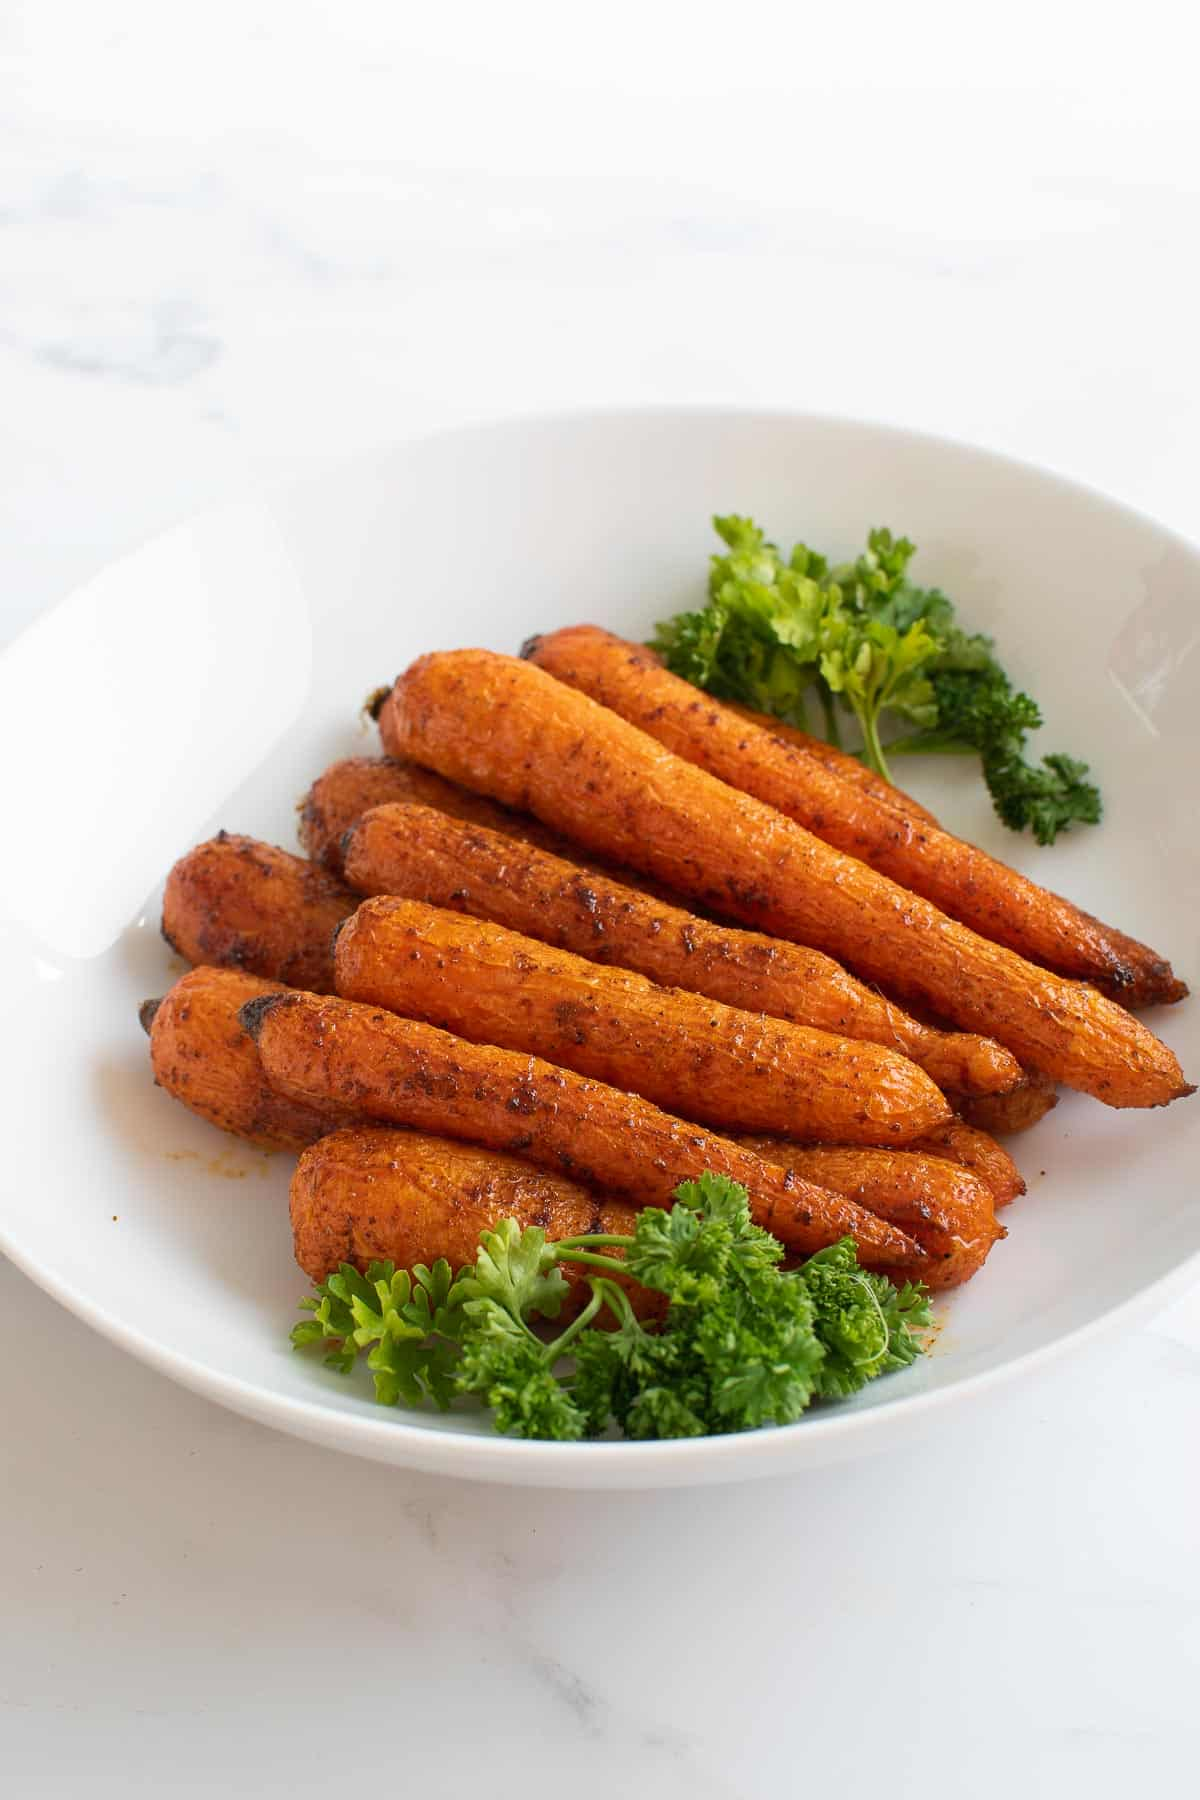 Spicy roast carrots with parsley in a bowl.